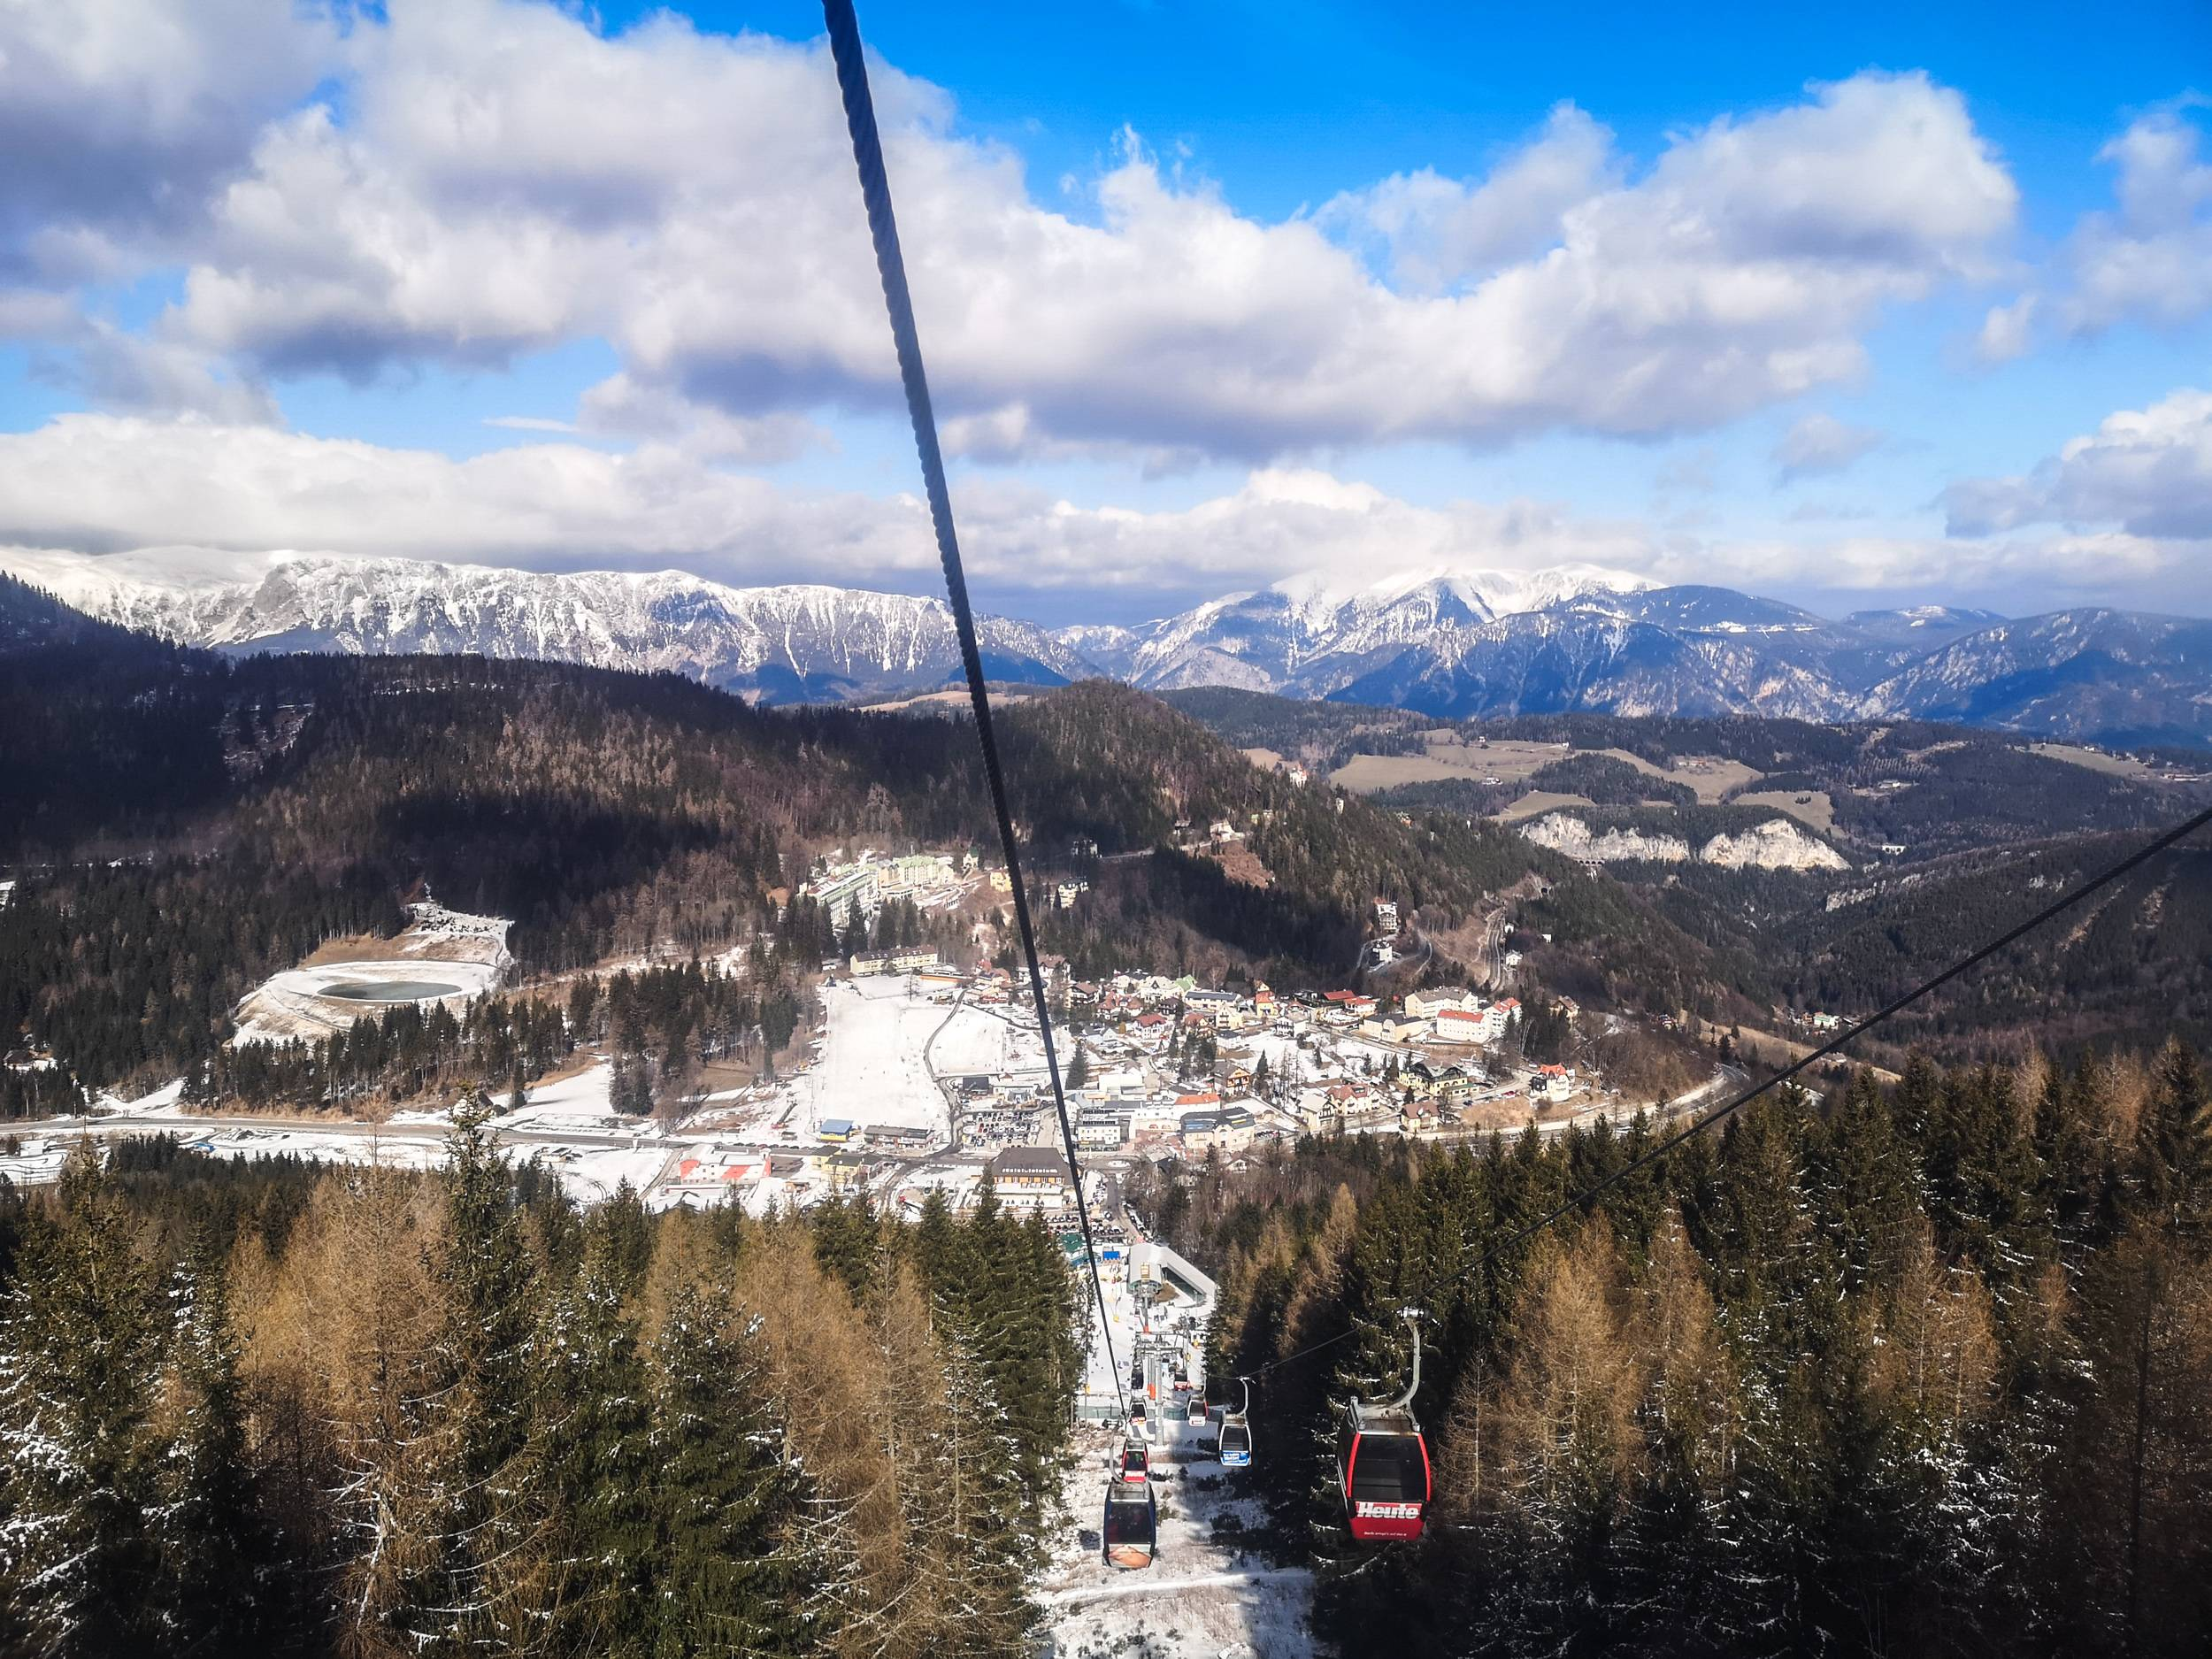 The ski lift alone is a venture worth your time. Photo by Alis Monte [CC BY-SA 4.0], via Connecting the Dots